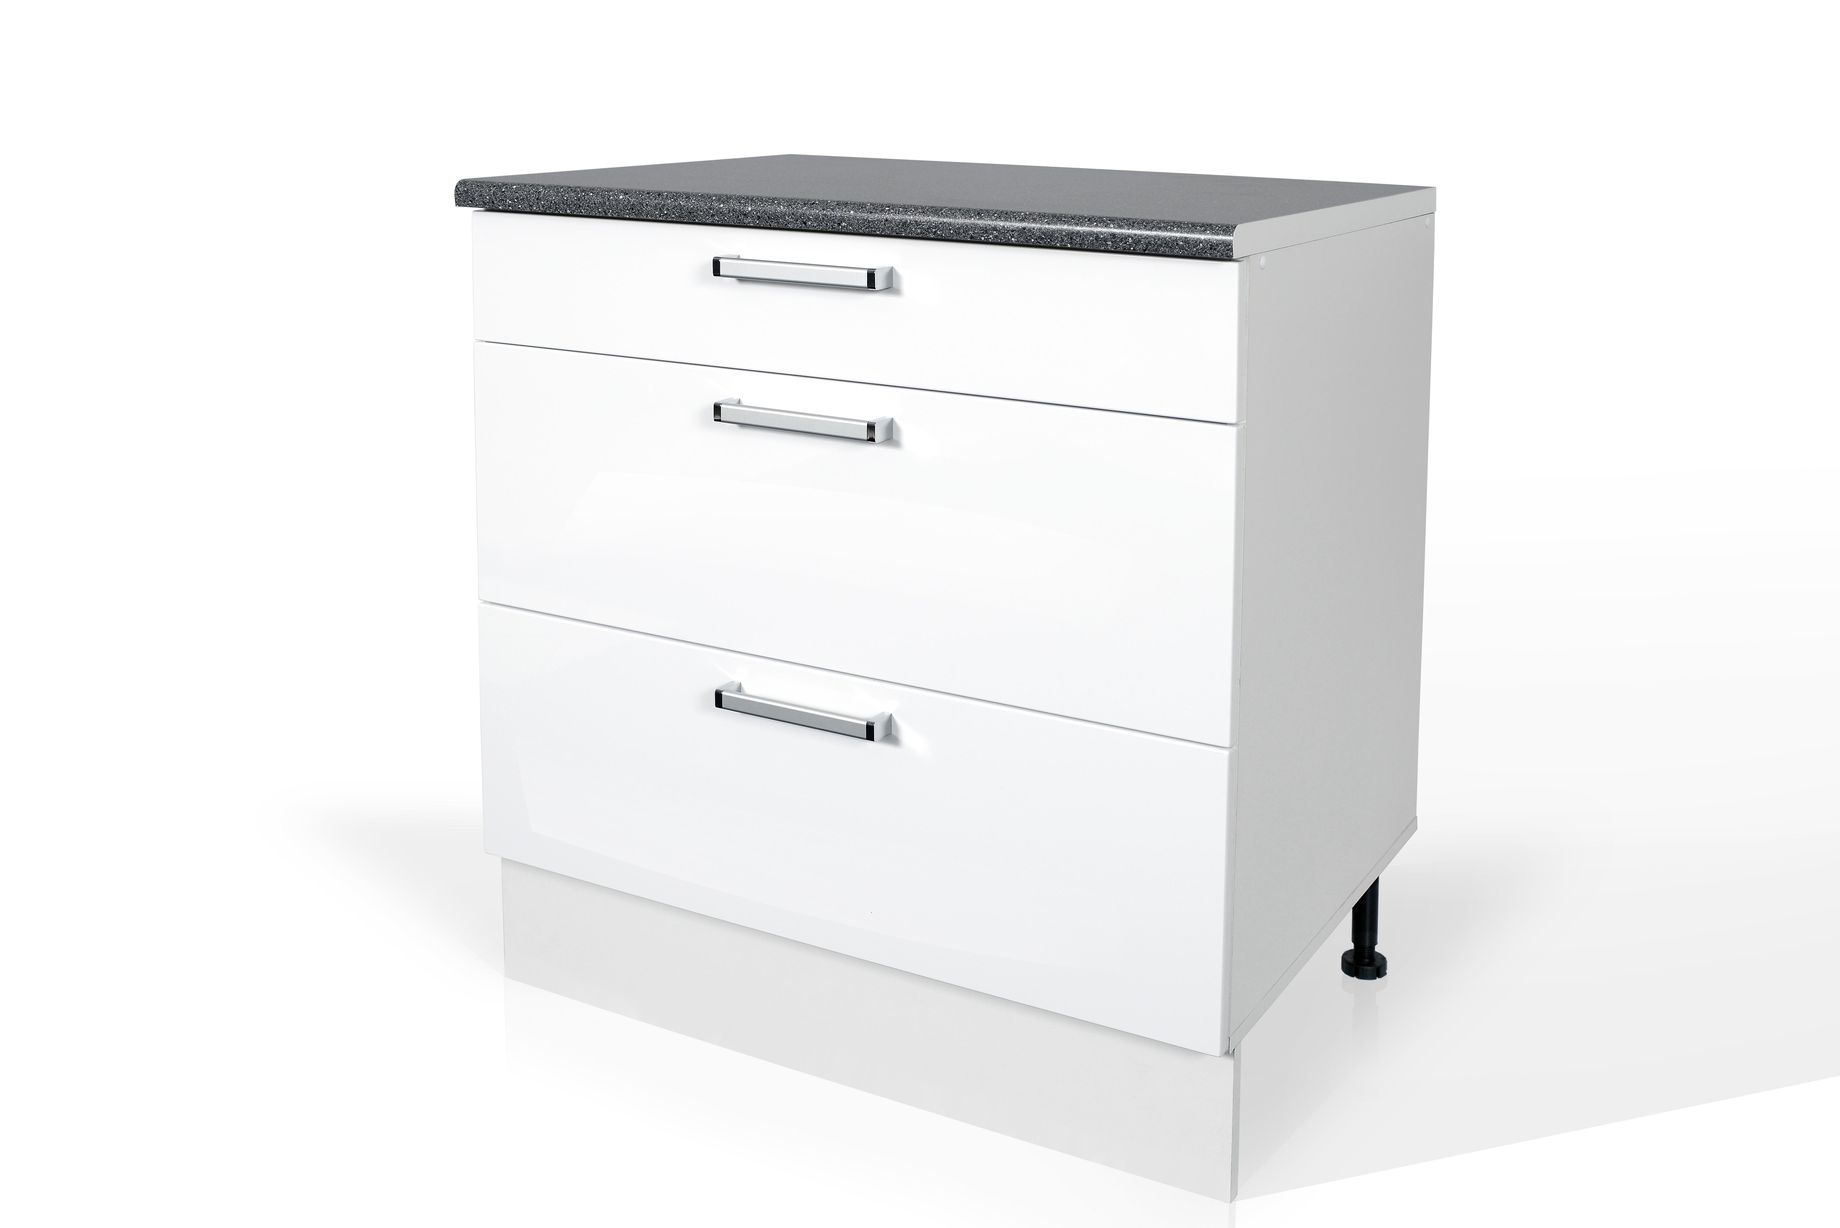 High Gloss White Base drawer cabinet S80SZ3 for kitchen